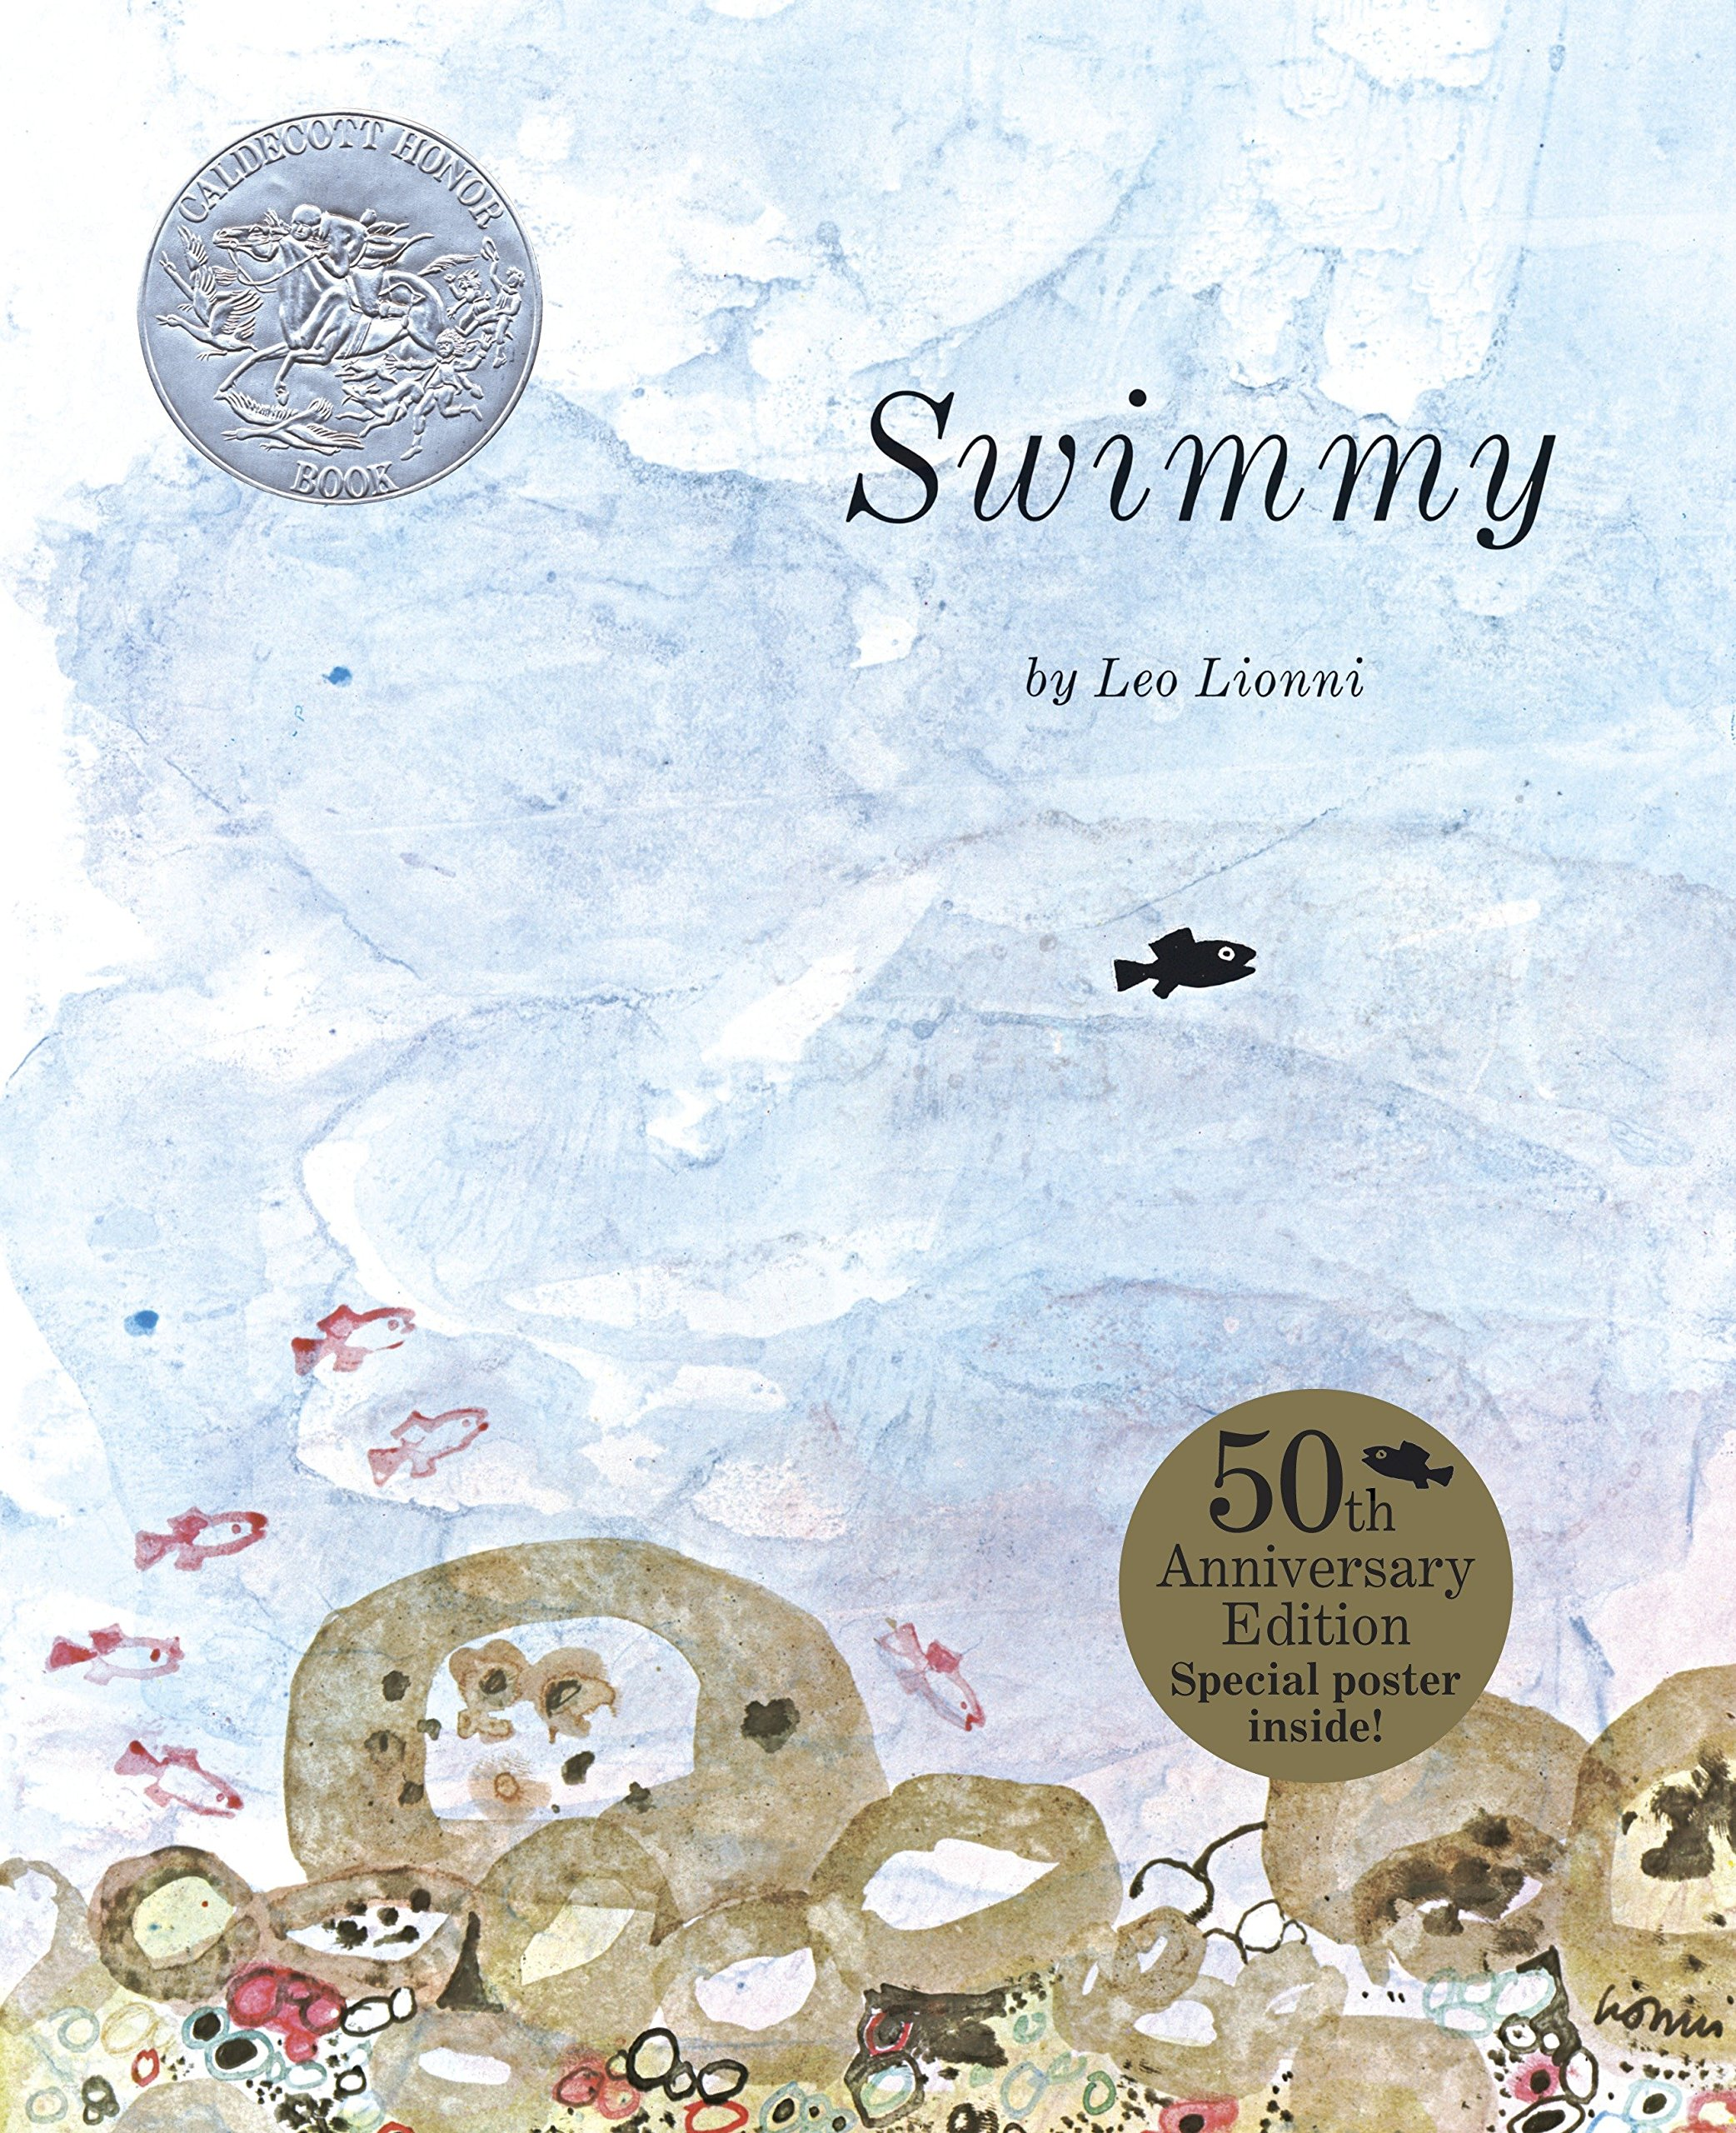 Swimmy 50th Anniversary Edition